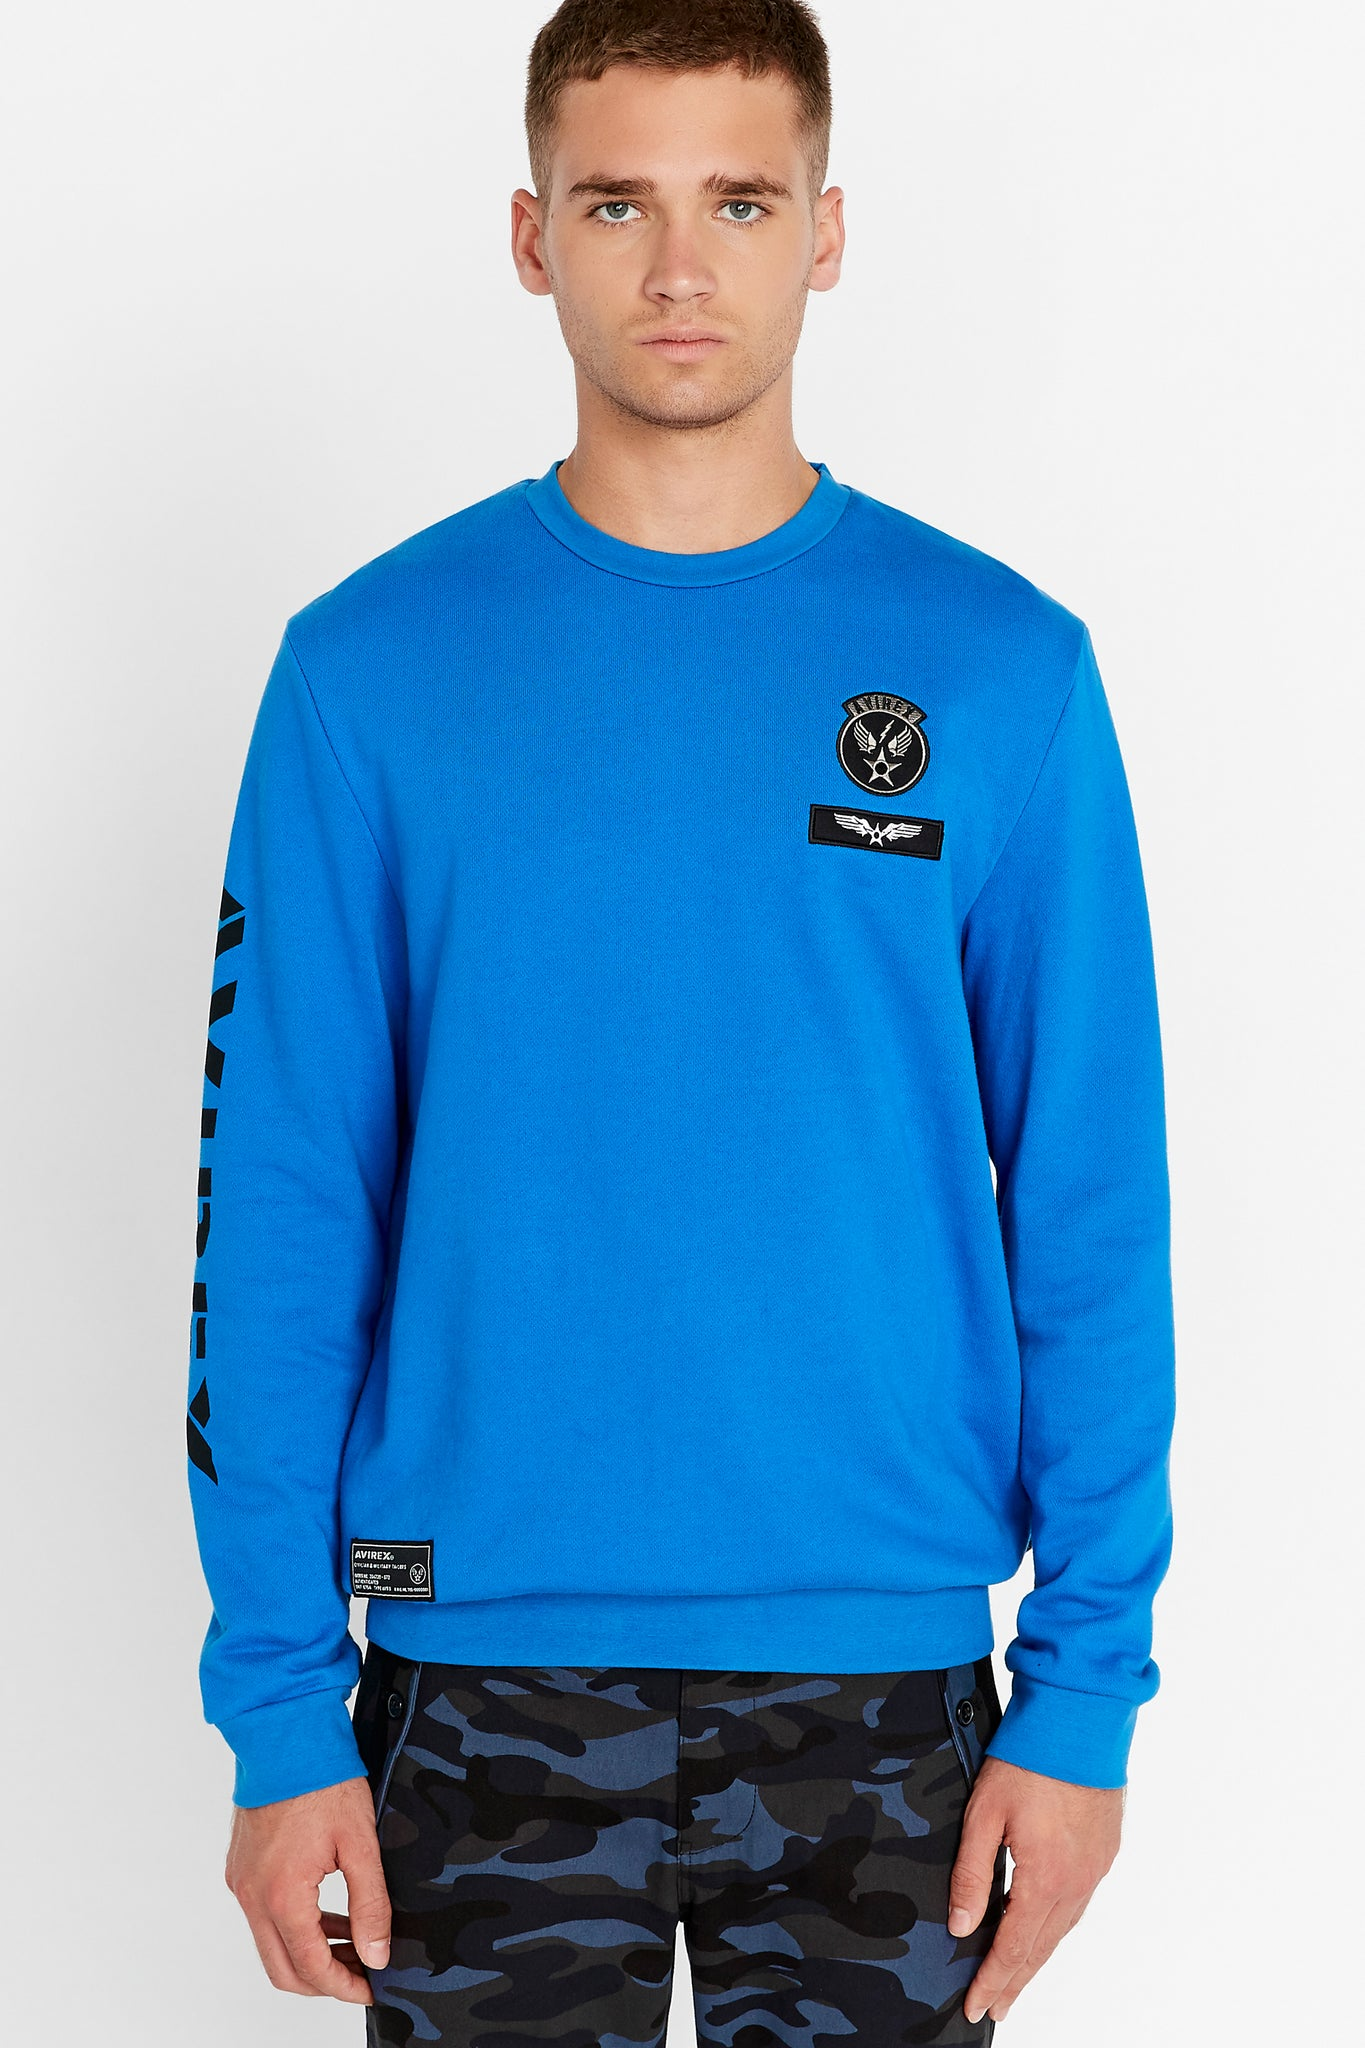 Men wearing a blue long sleeve crew neck sweater with patches on the chest and right bottom and logo print on the right sleeve